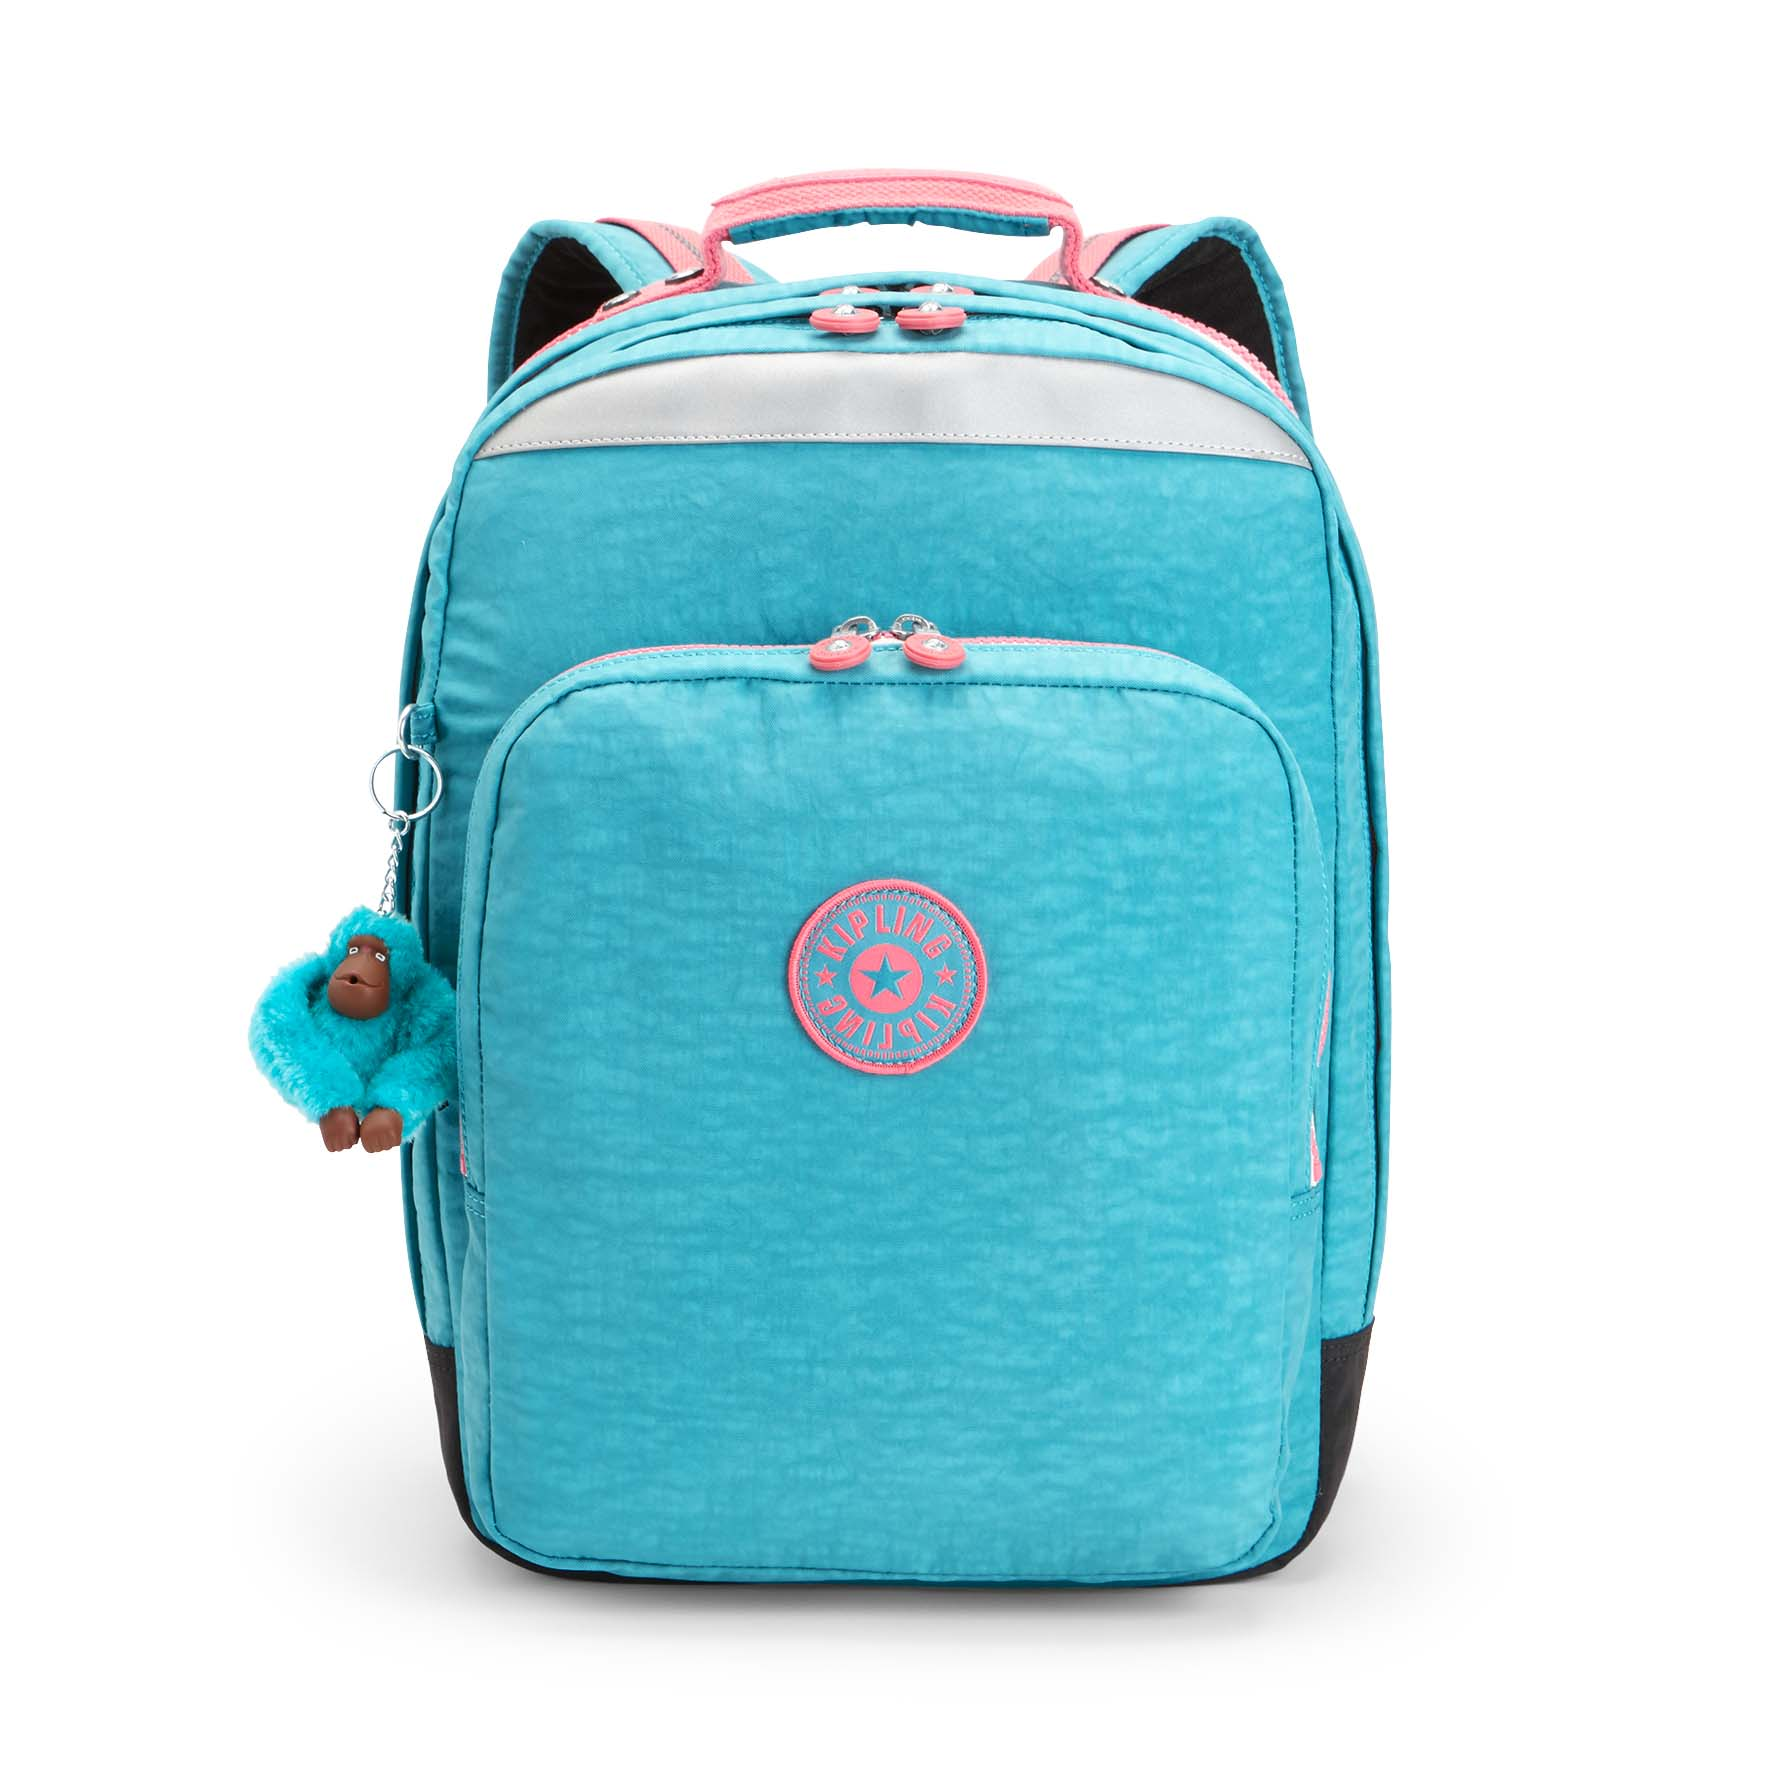 Kipling Back to School